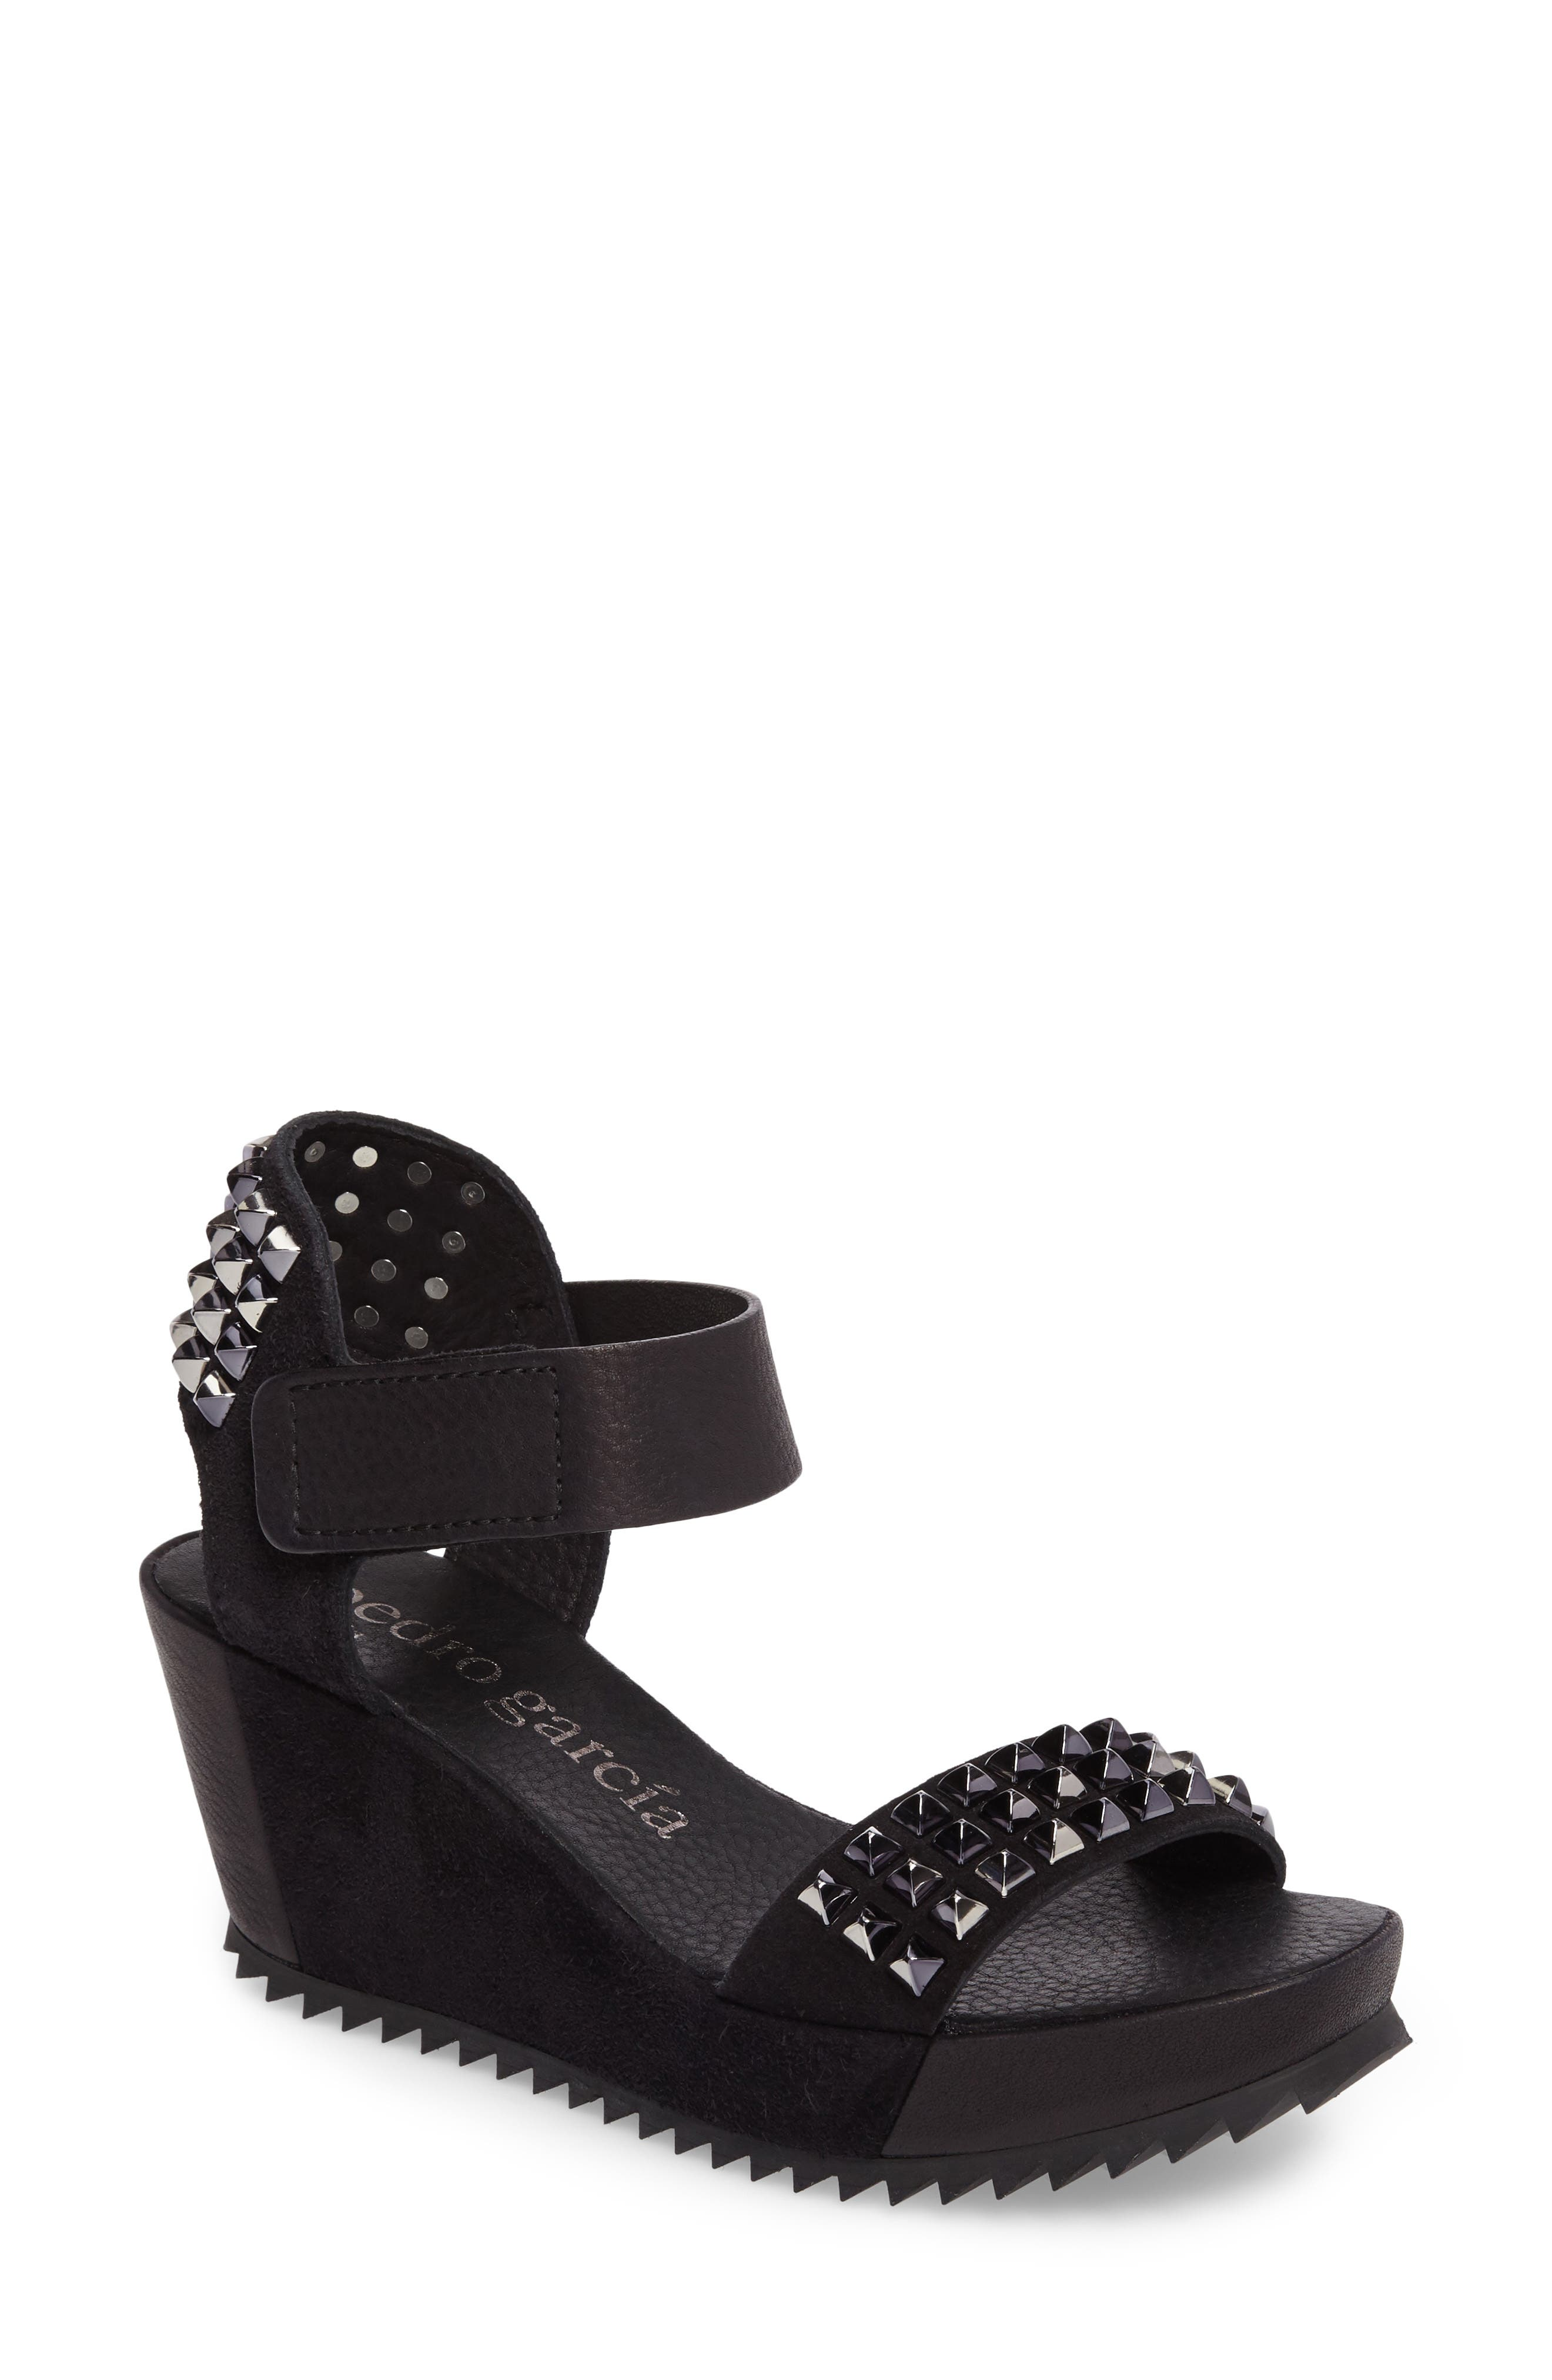 Fortuna Studded Wedge Sandal,                         Main,                         color,